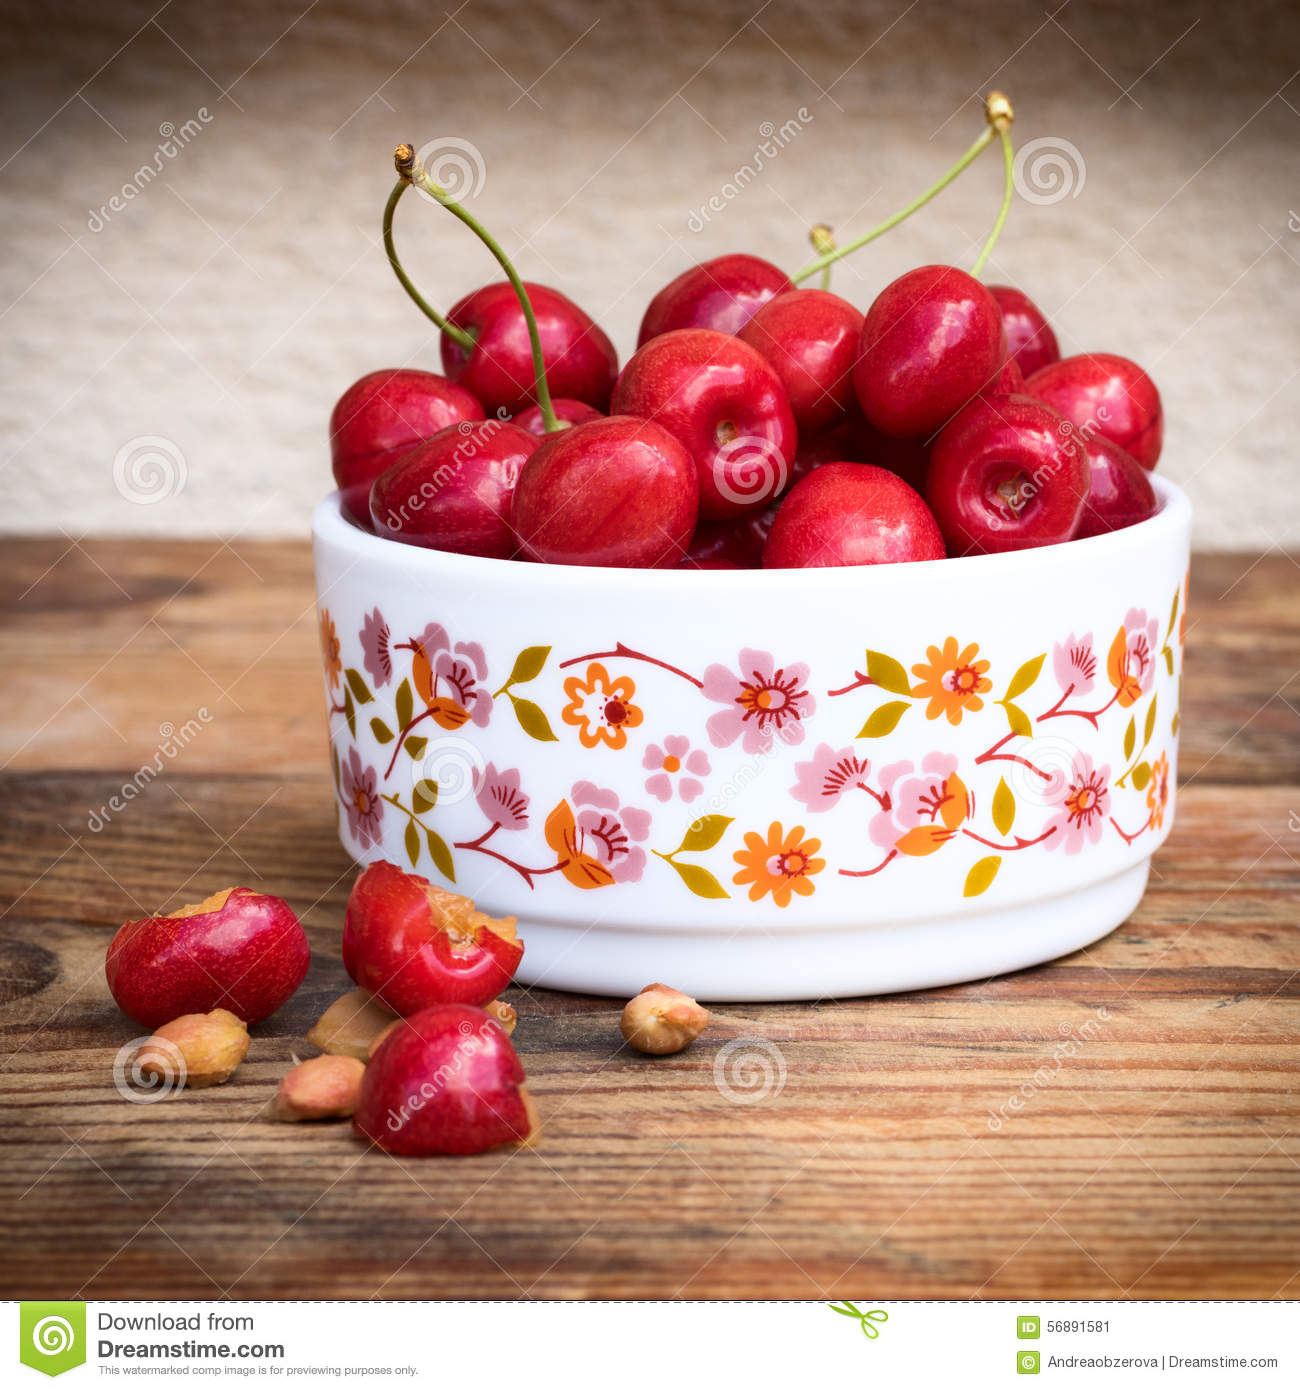 Organic homegrown cherries and stones in a vintage ceramic bowl, on wooden background